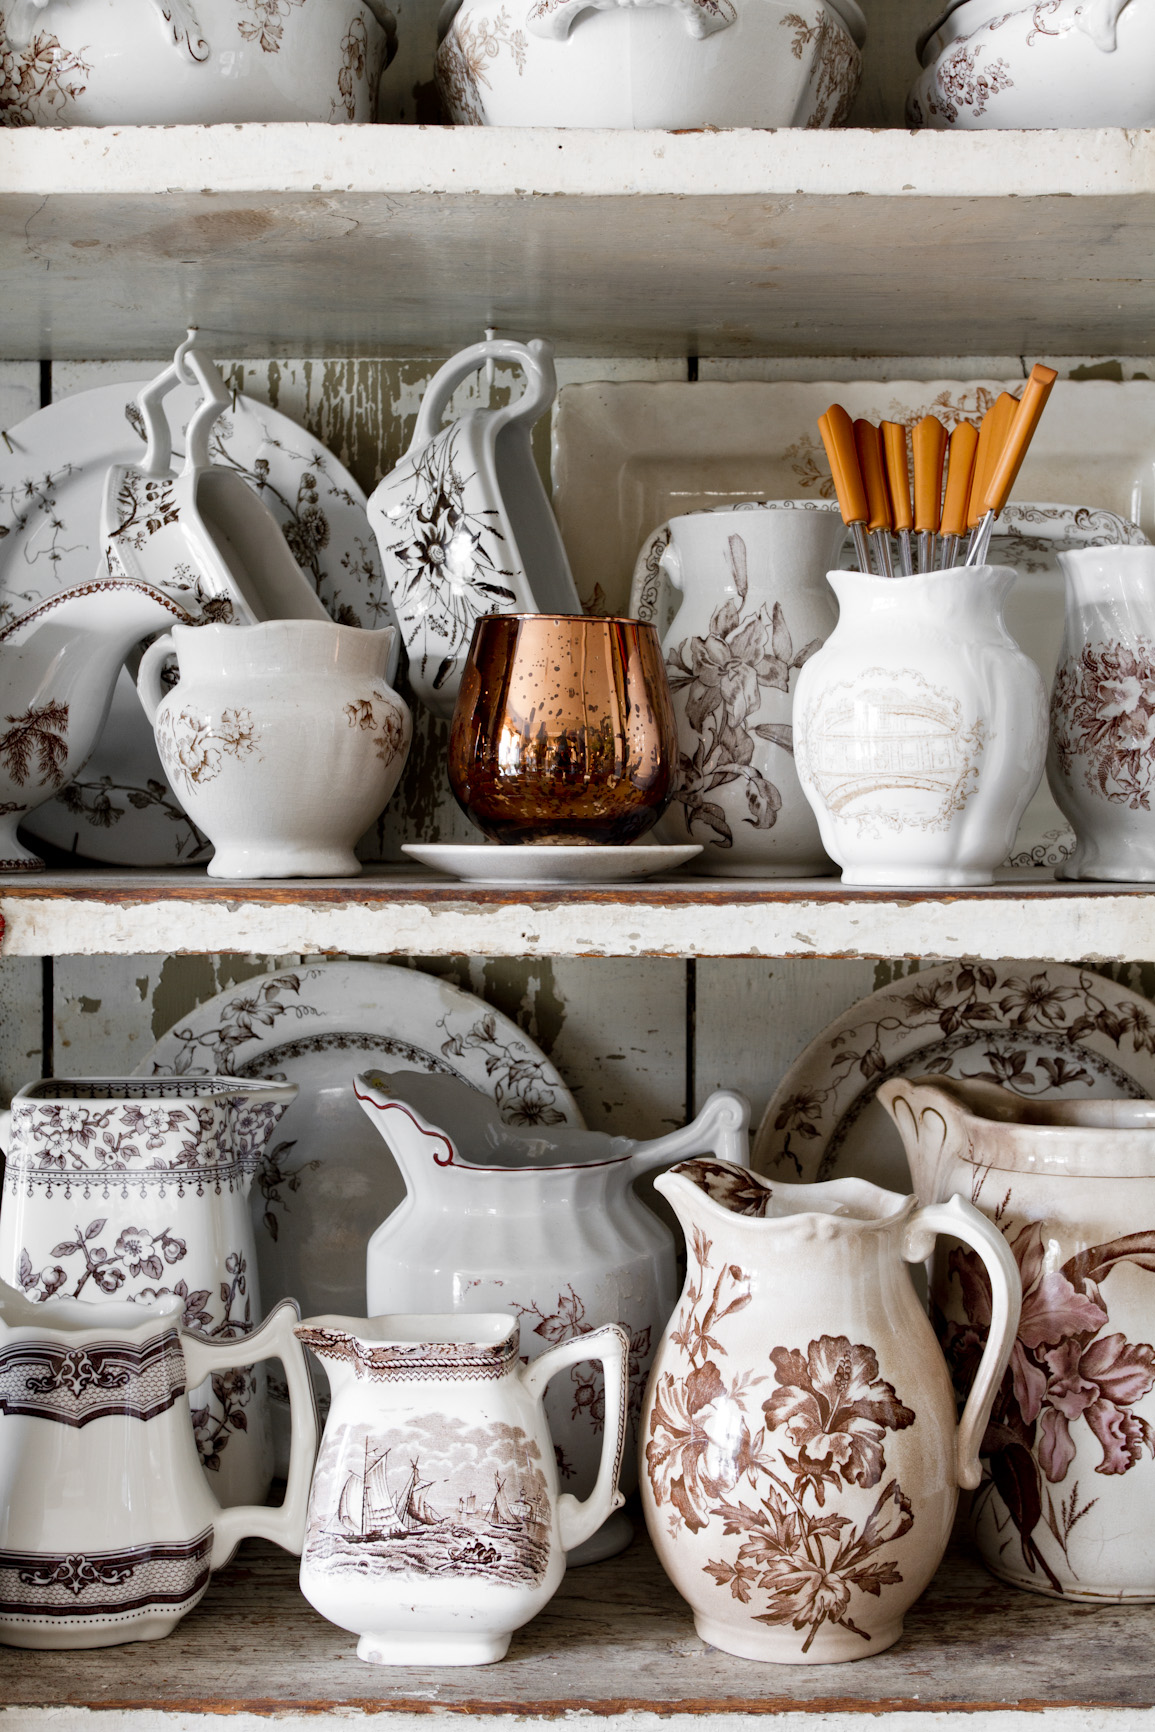 pottery-collection-interior-photography.jpg